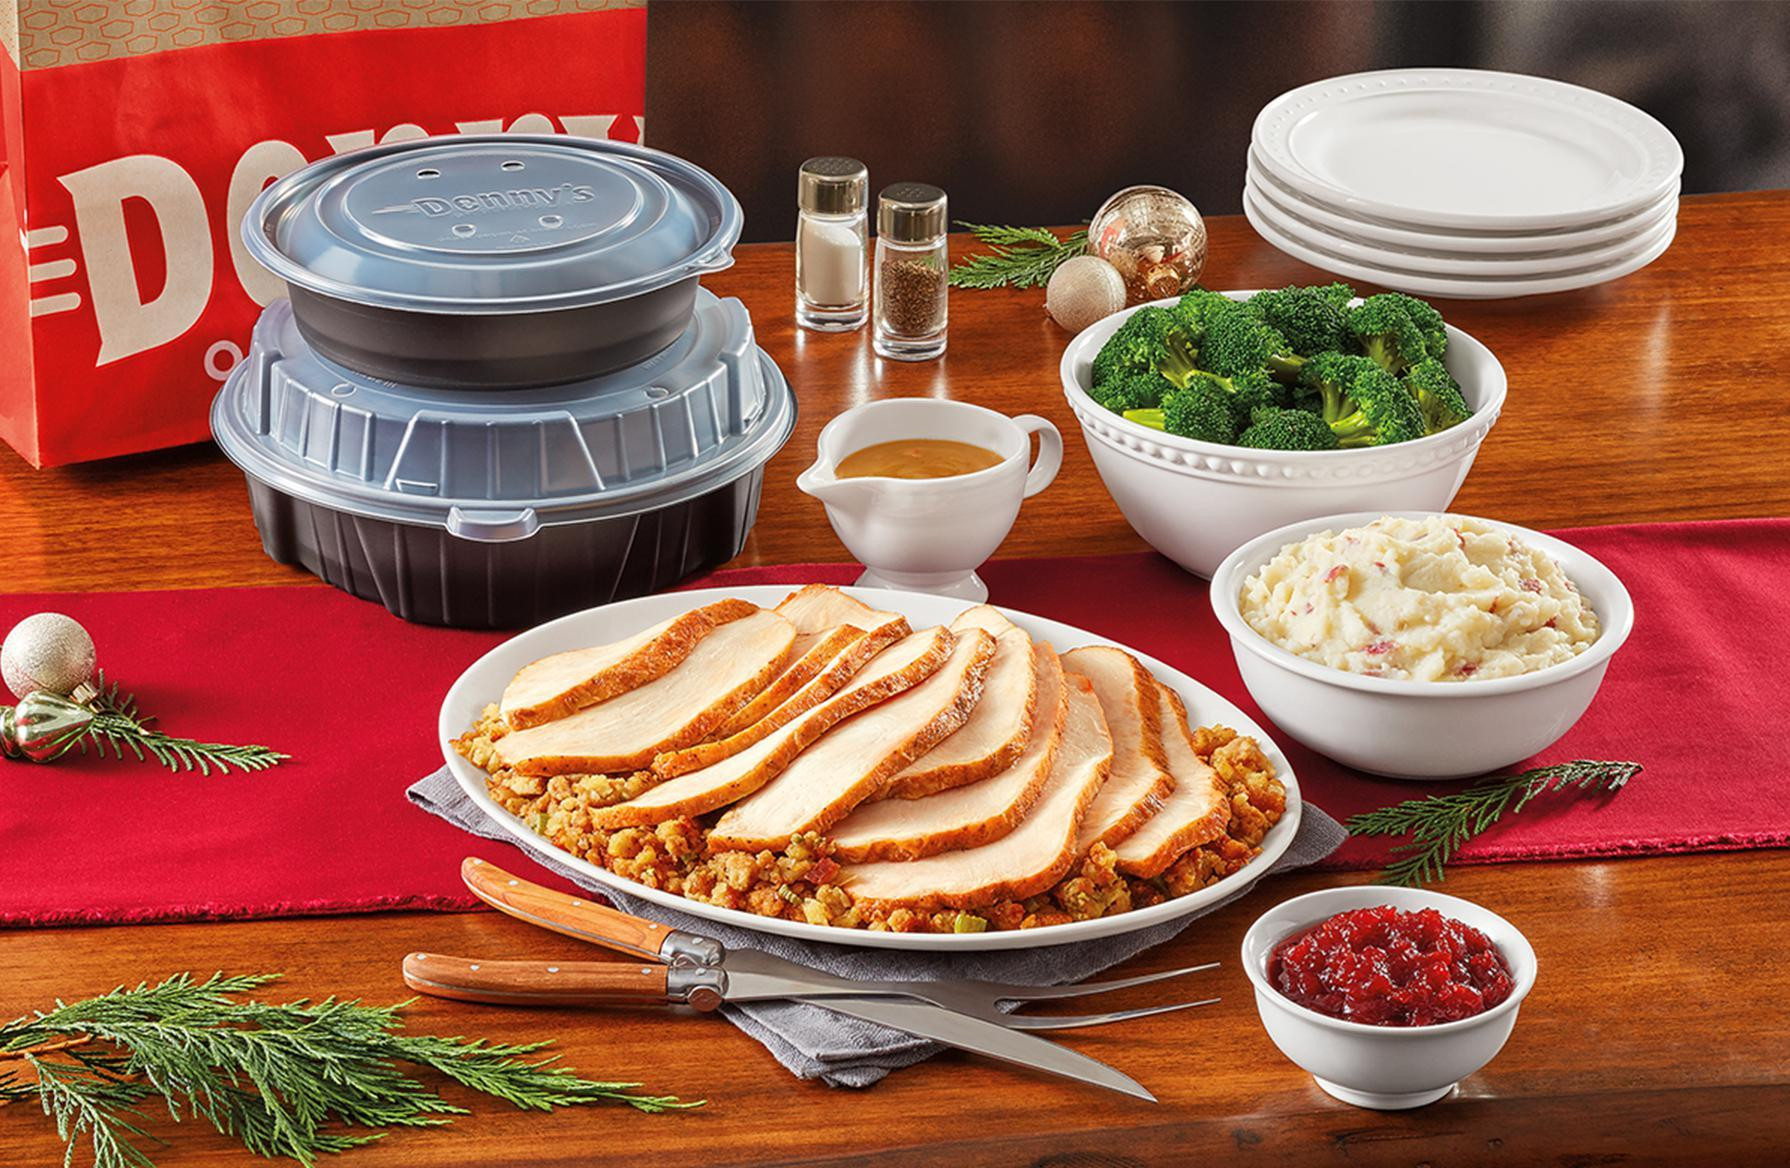 Restaurants That Serve Thanksgiving Dinner  19 Chain Restaurants Serving Thanksgiving Dinner Gallery